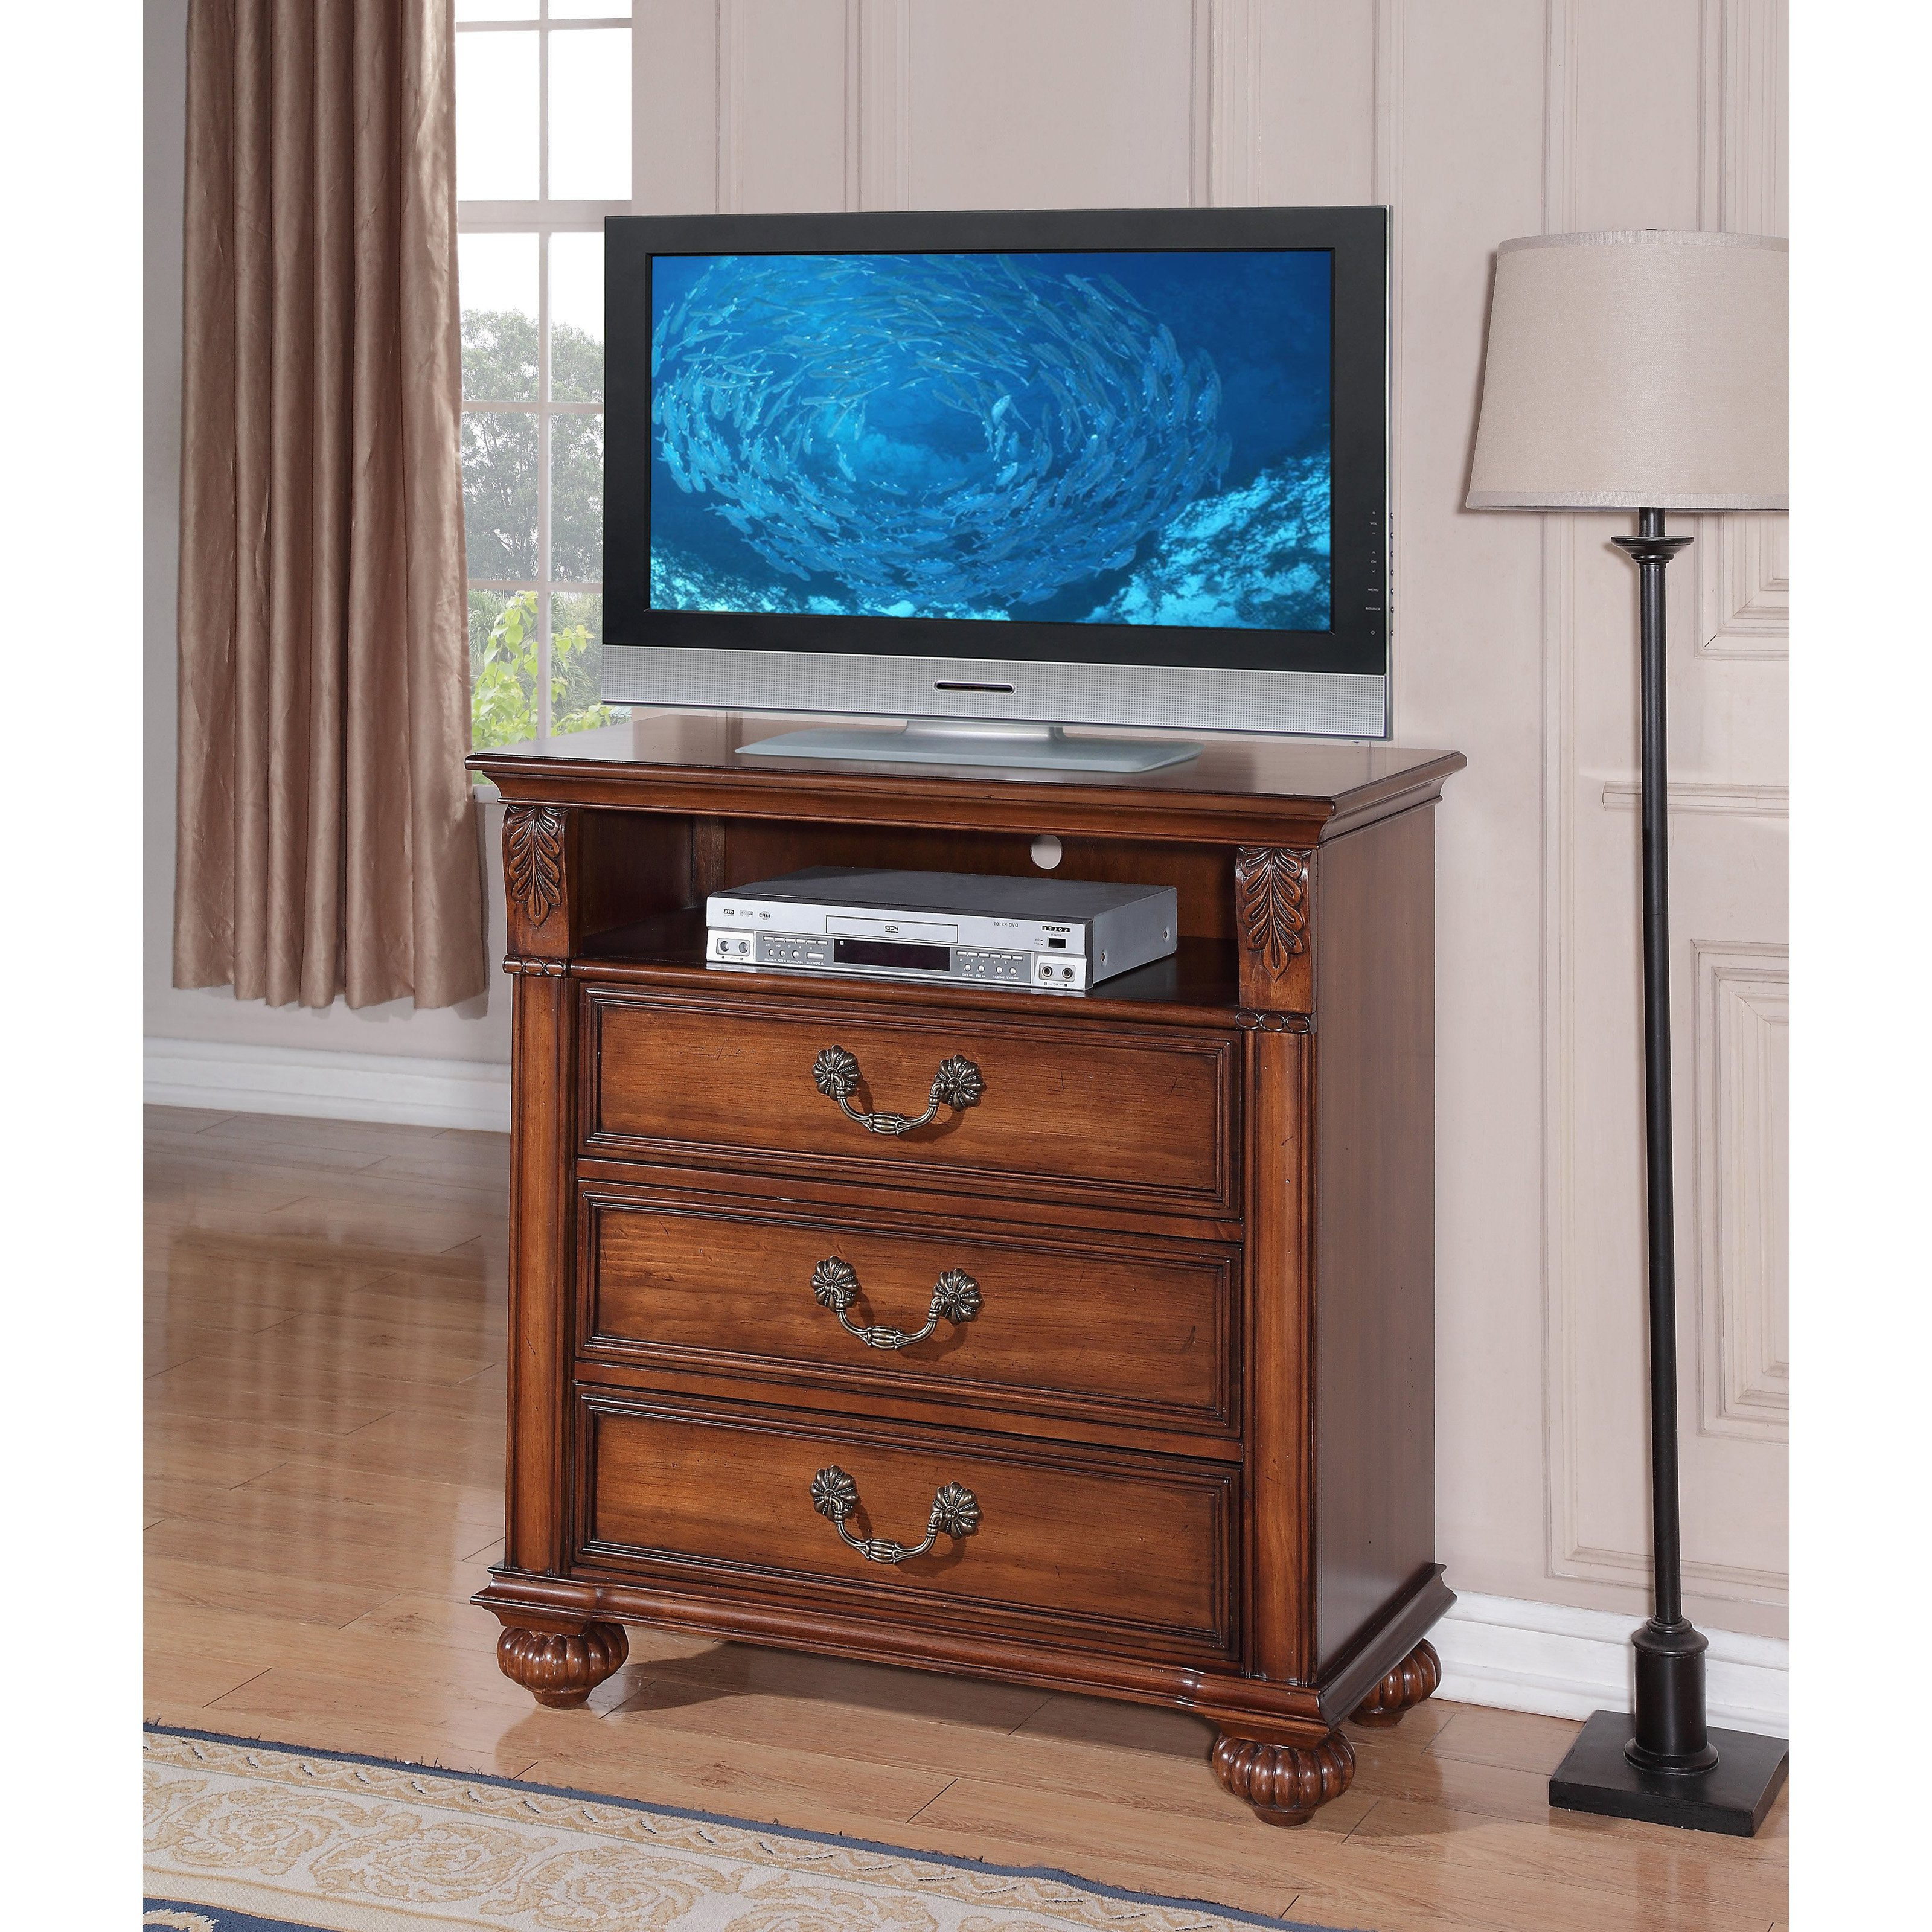 expand tv elements cherry to traditional with media chest white drawer drawers p cameron stand click international